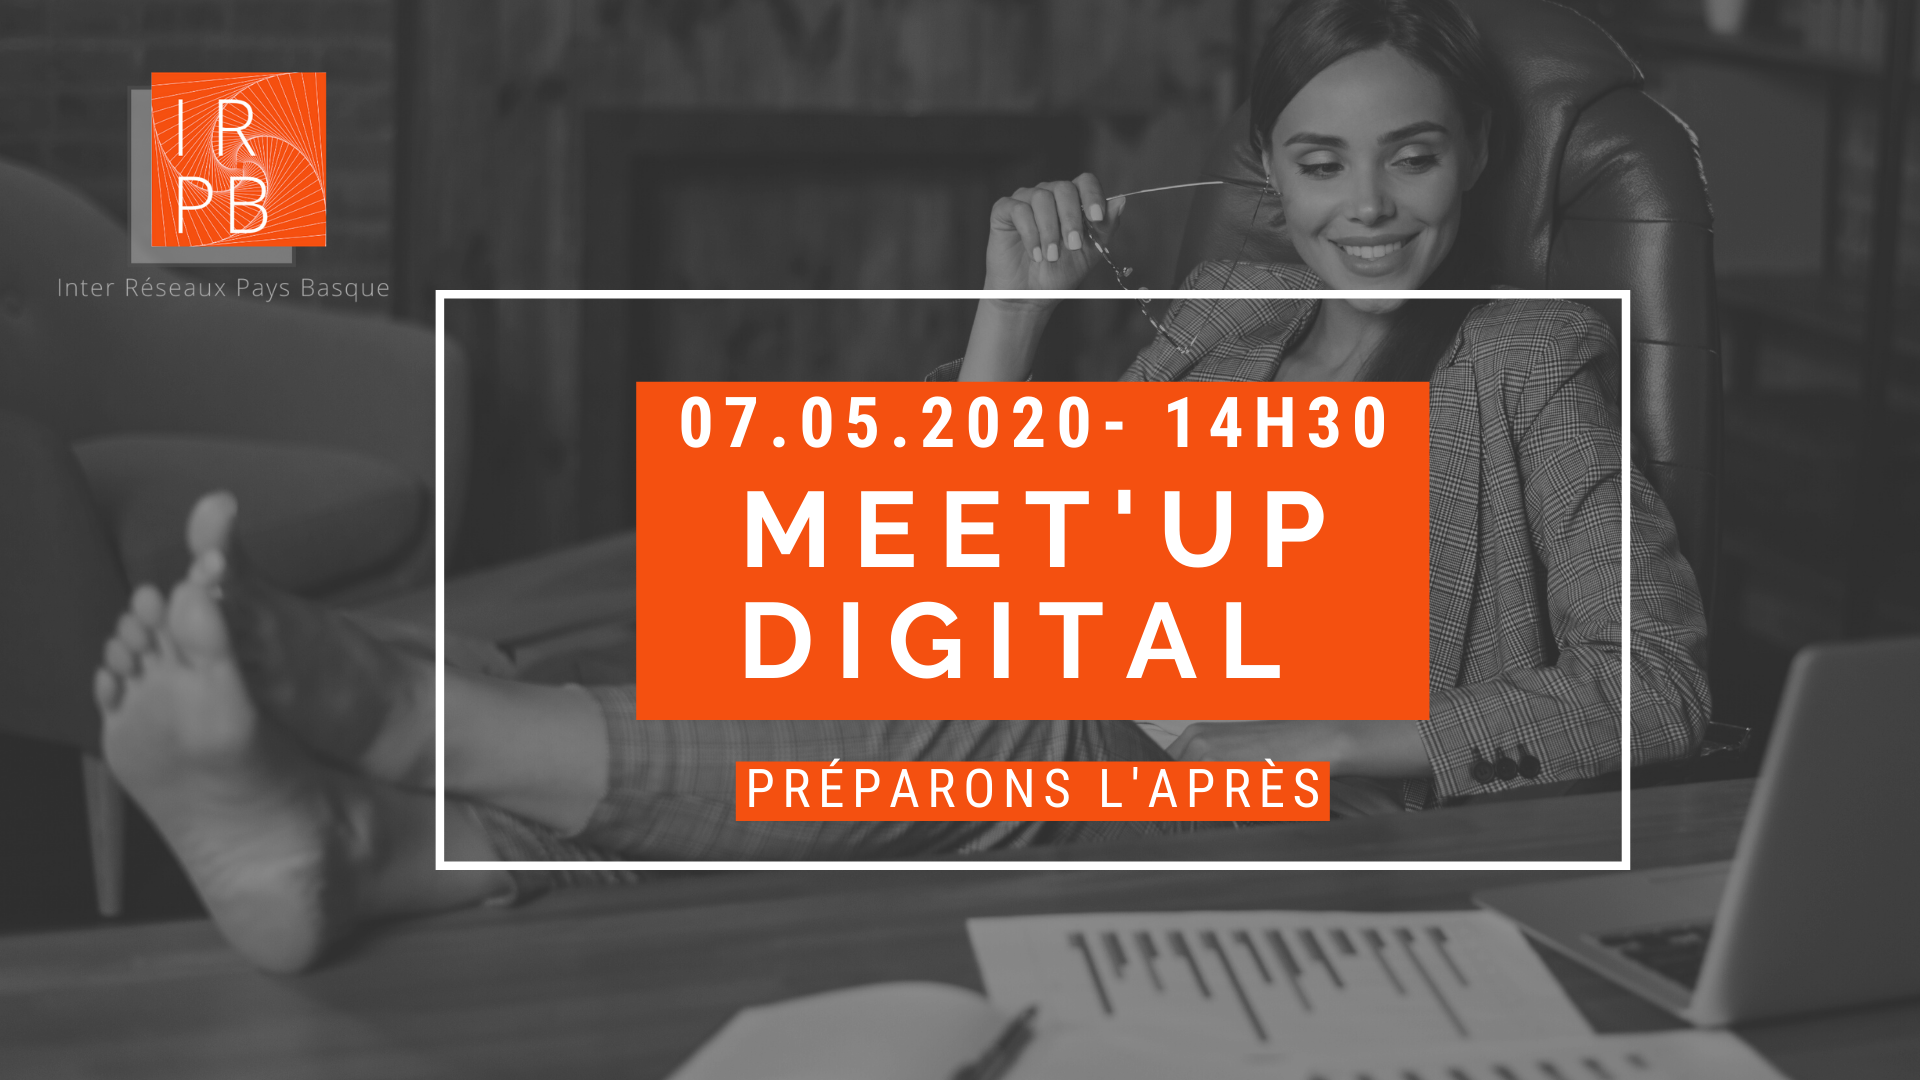 meet up digital irpb